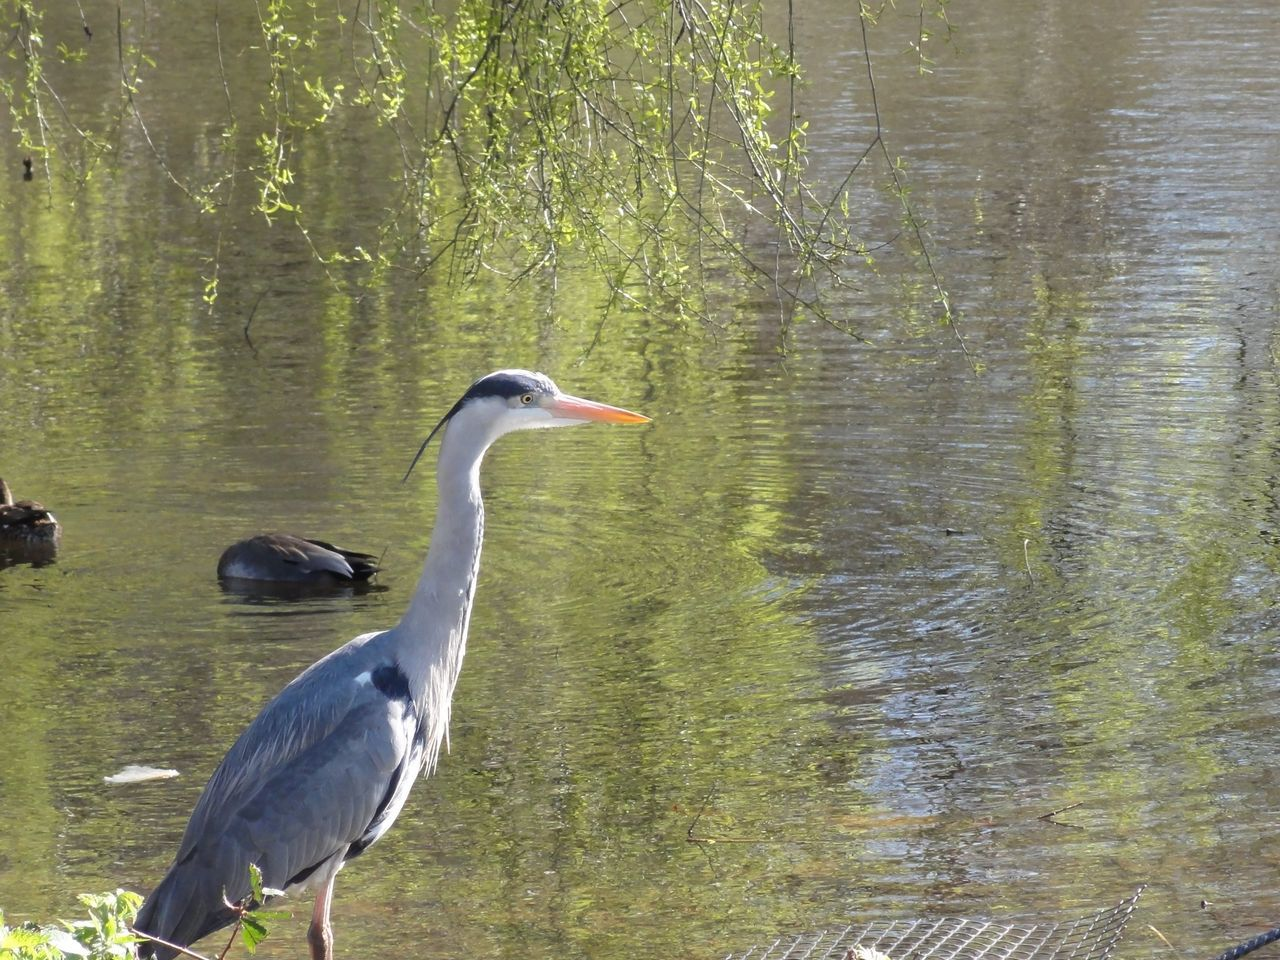 animal themes, animals in the wild, bird, one animal, animal wildlife, lake, heron, nature, day, no people, gray heron, water, outdoors, beauty in nature, grass, tree